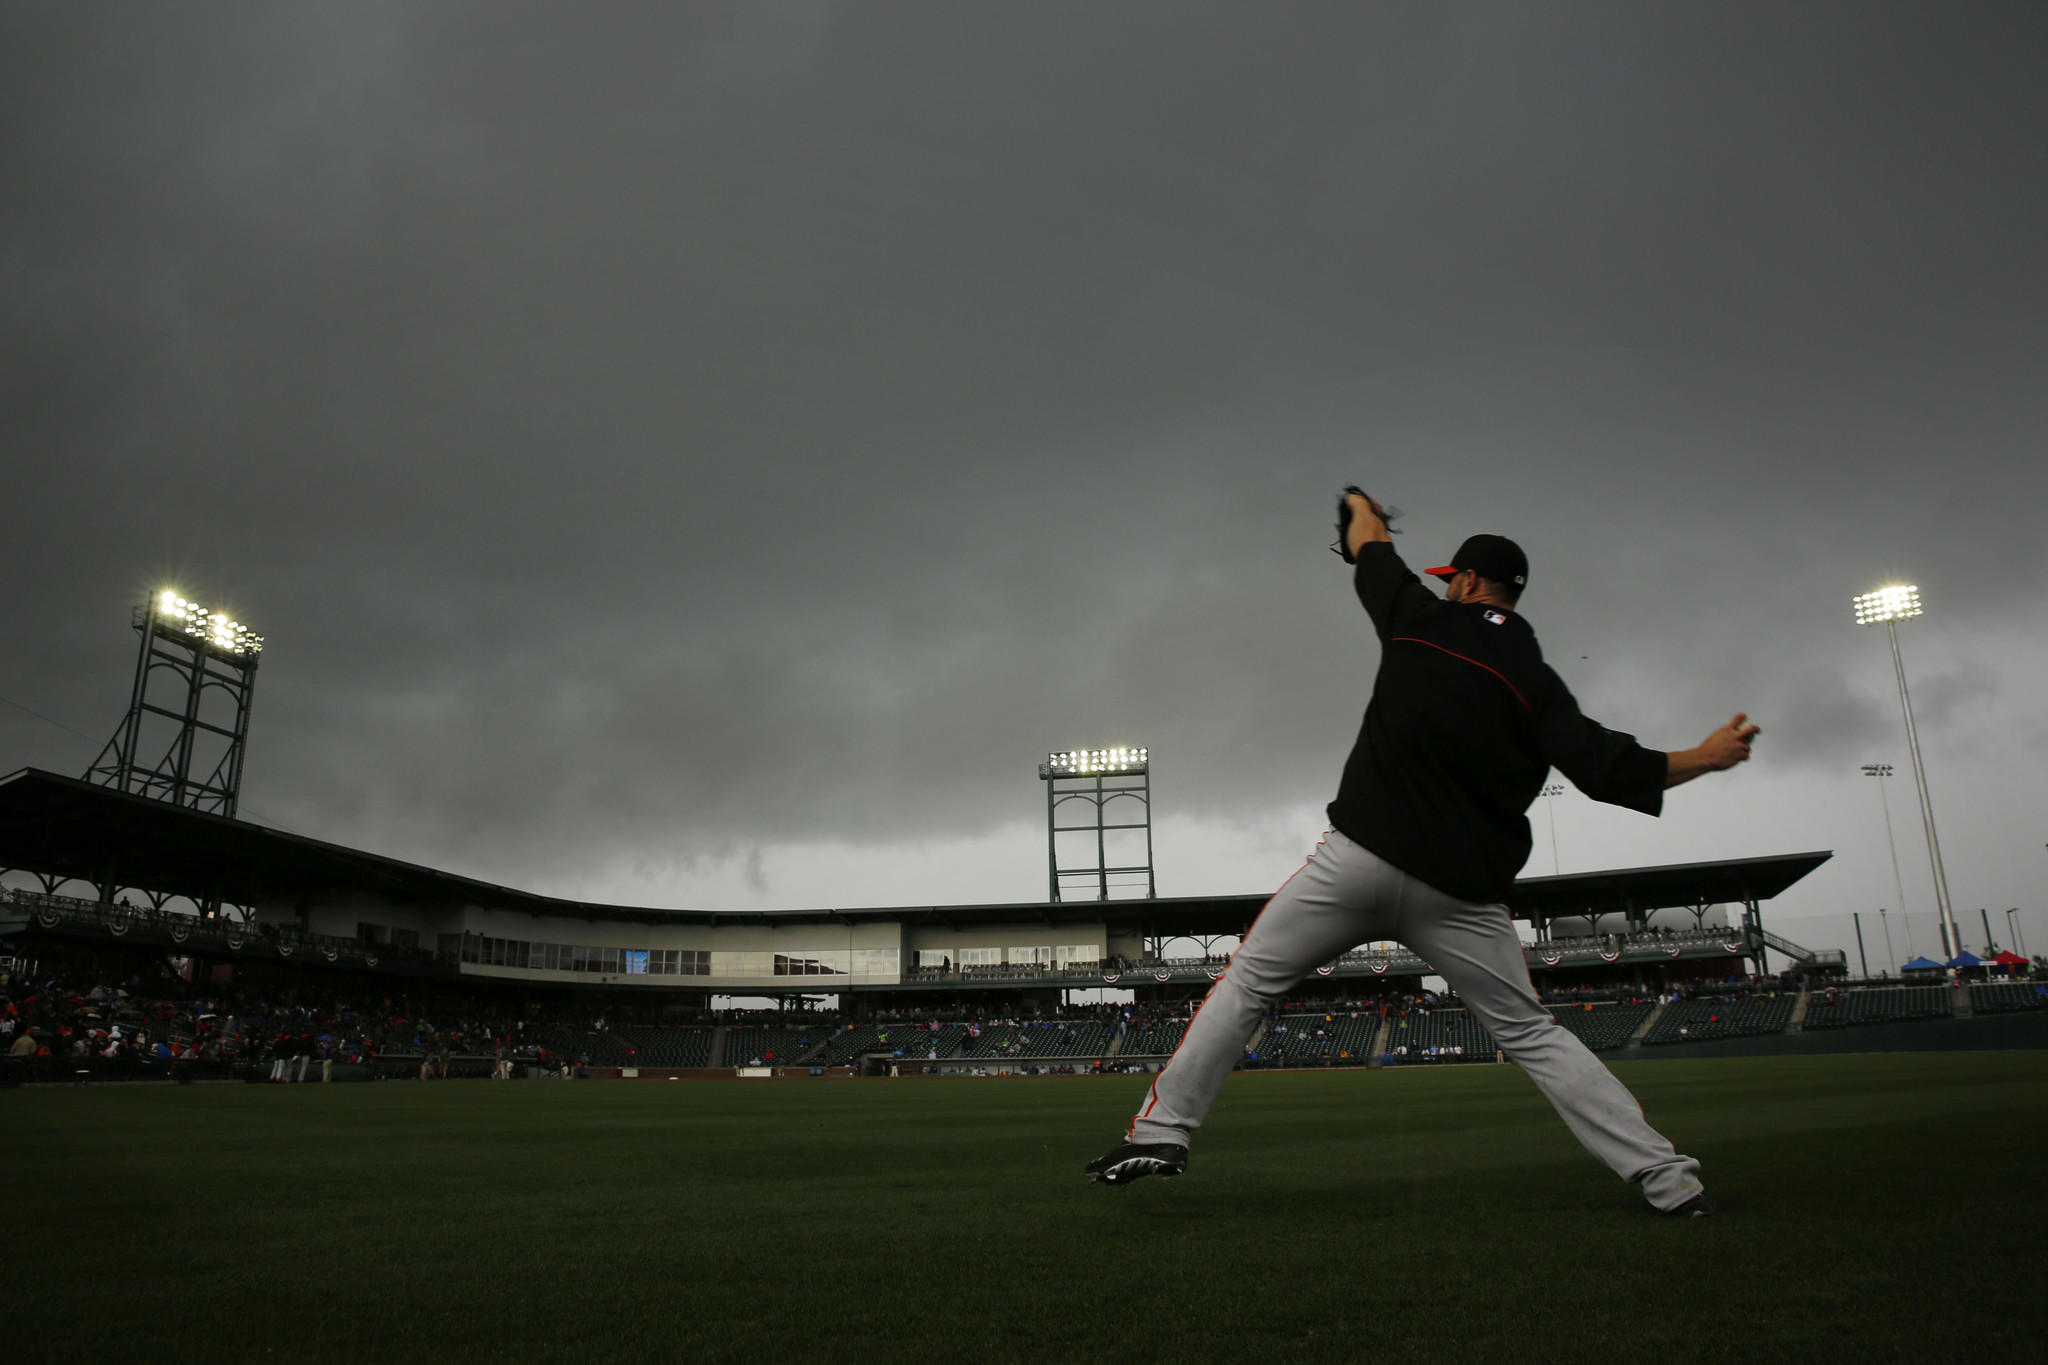 A San Francisco Giants pitcher warms up Saturday, March 1, 2014 in the outfield as clouds move in, causing a rain delay before a spring training game between the Cubs and Giants at Cubs Park in Mesa, Arizona. The game was eventually cancelled.